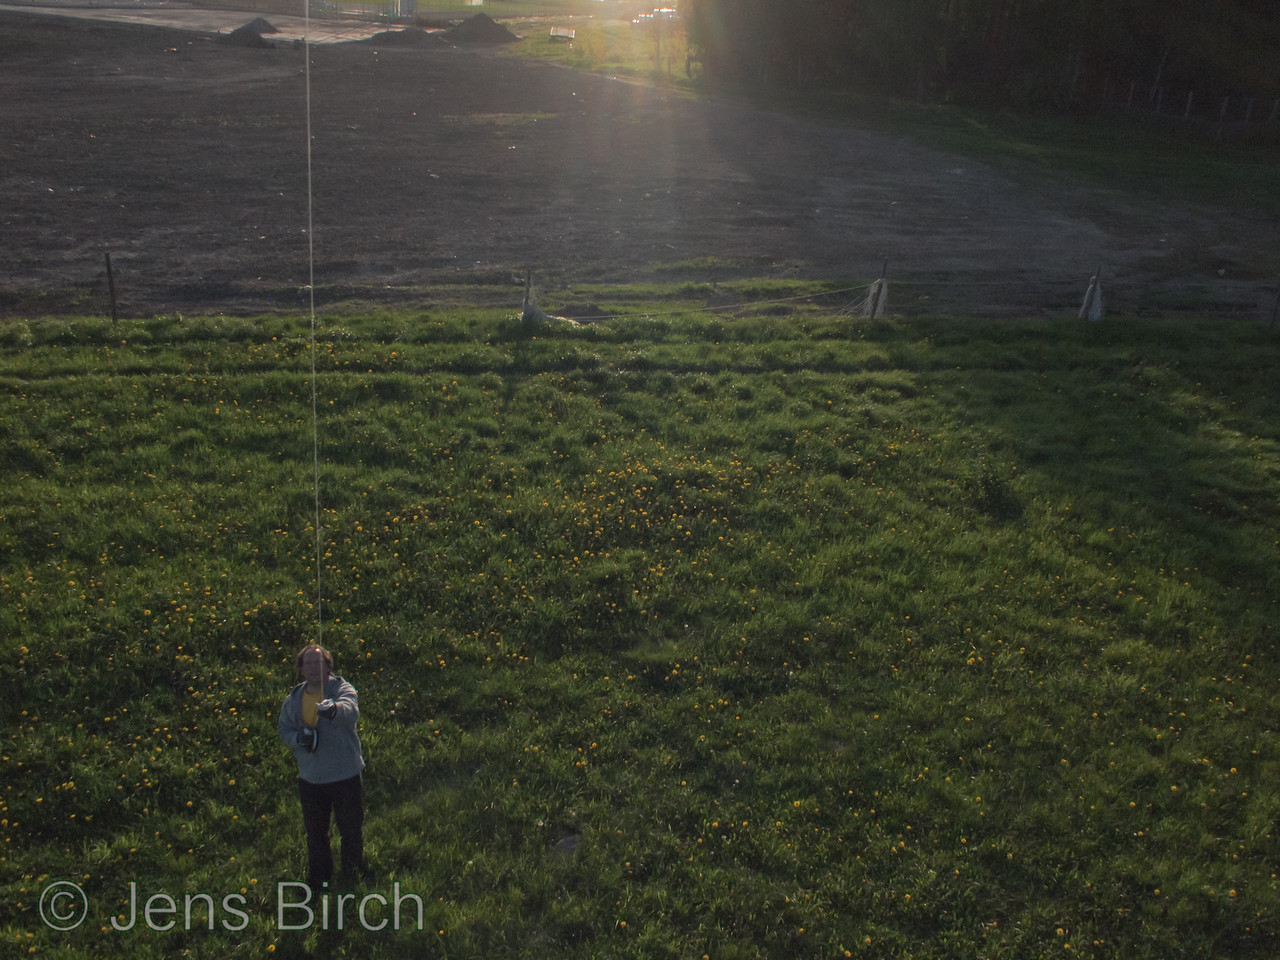 My first venture into KAP. I tested my new 2.15 m rokaku kite which pulled so much that I could't resist tying the camera strap halfway up the kite line.